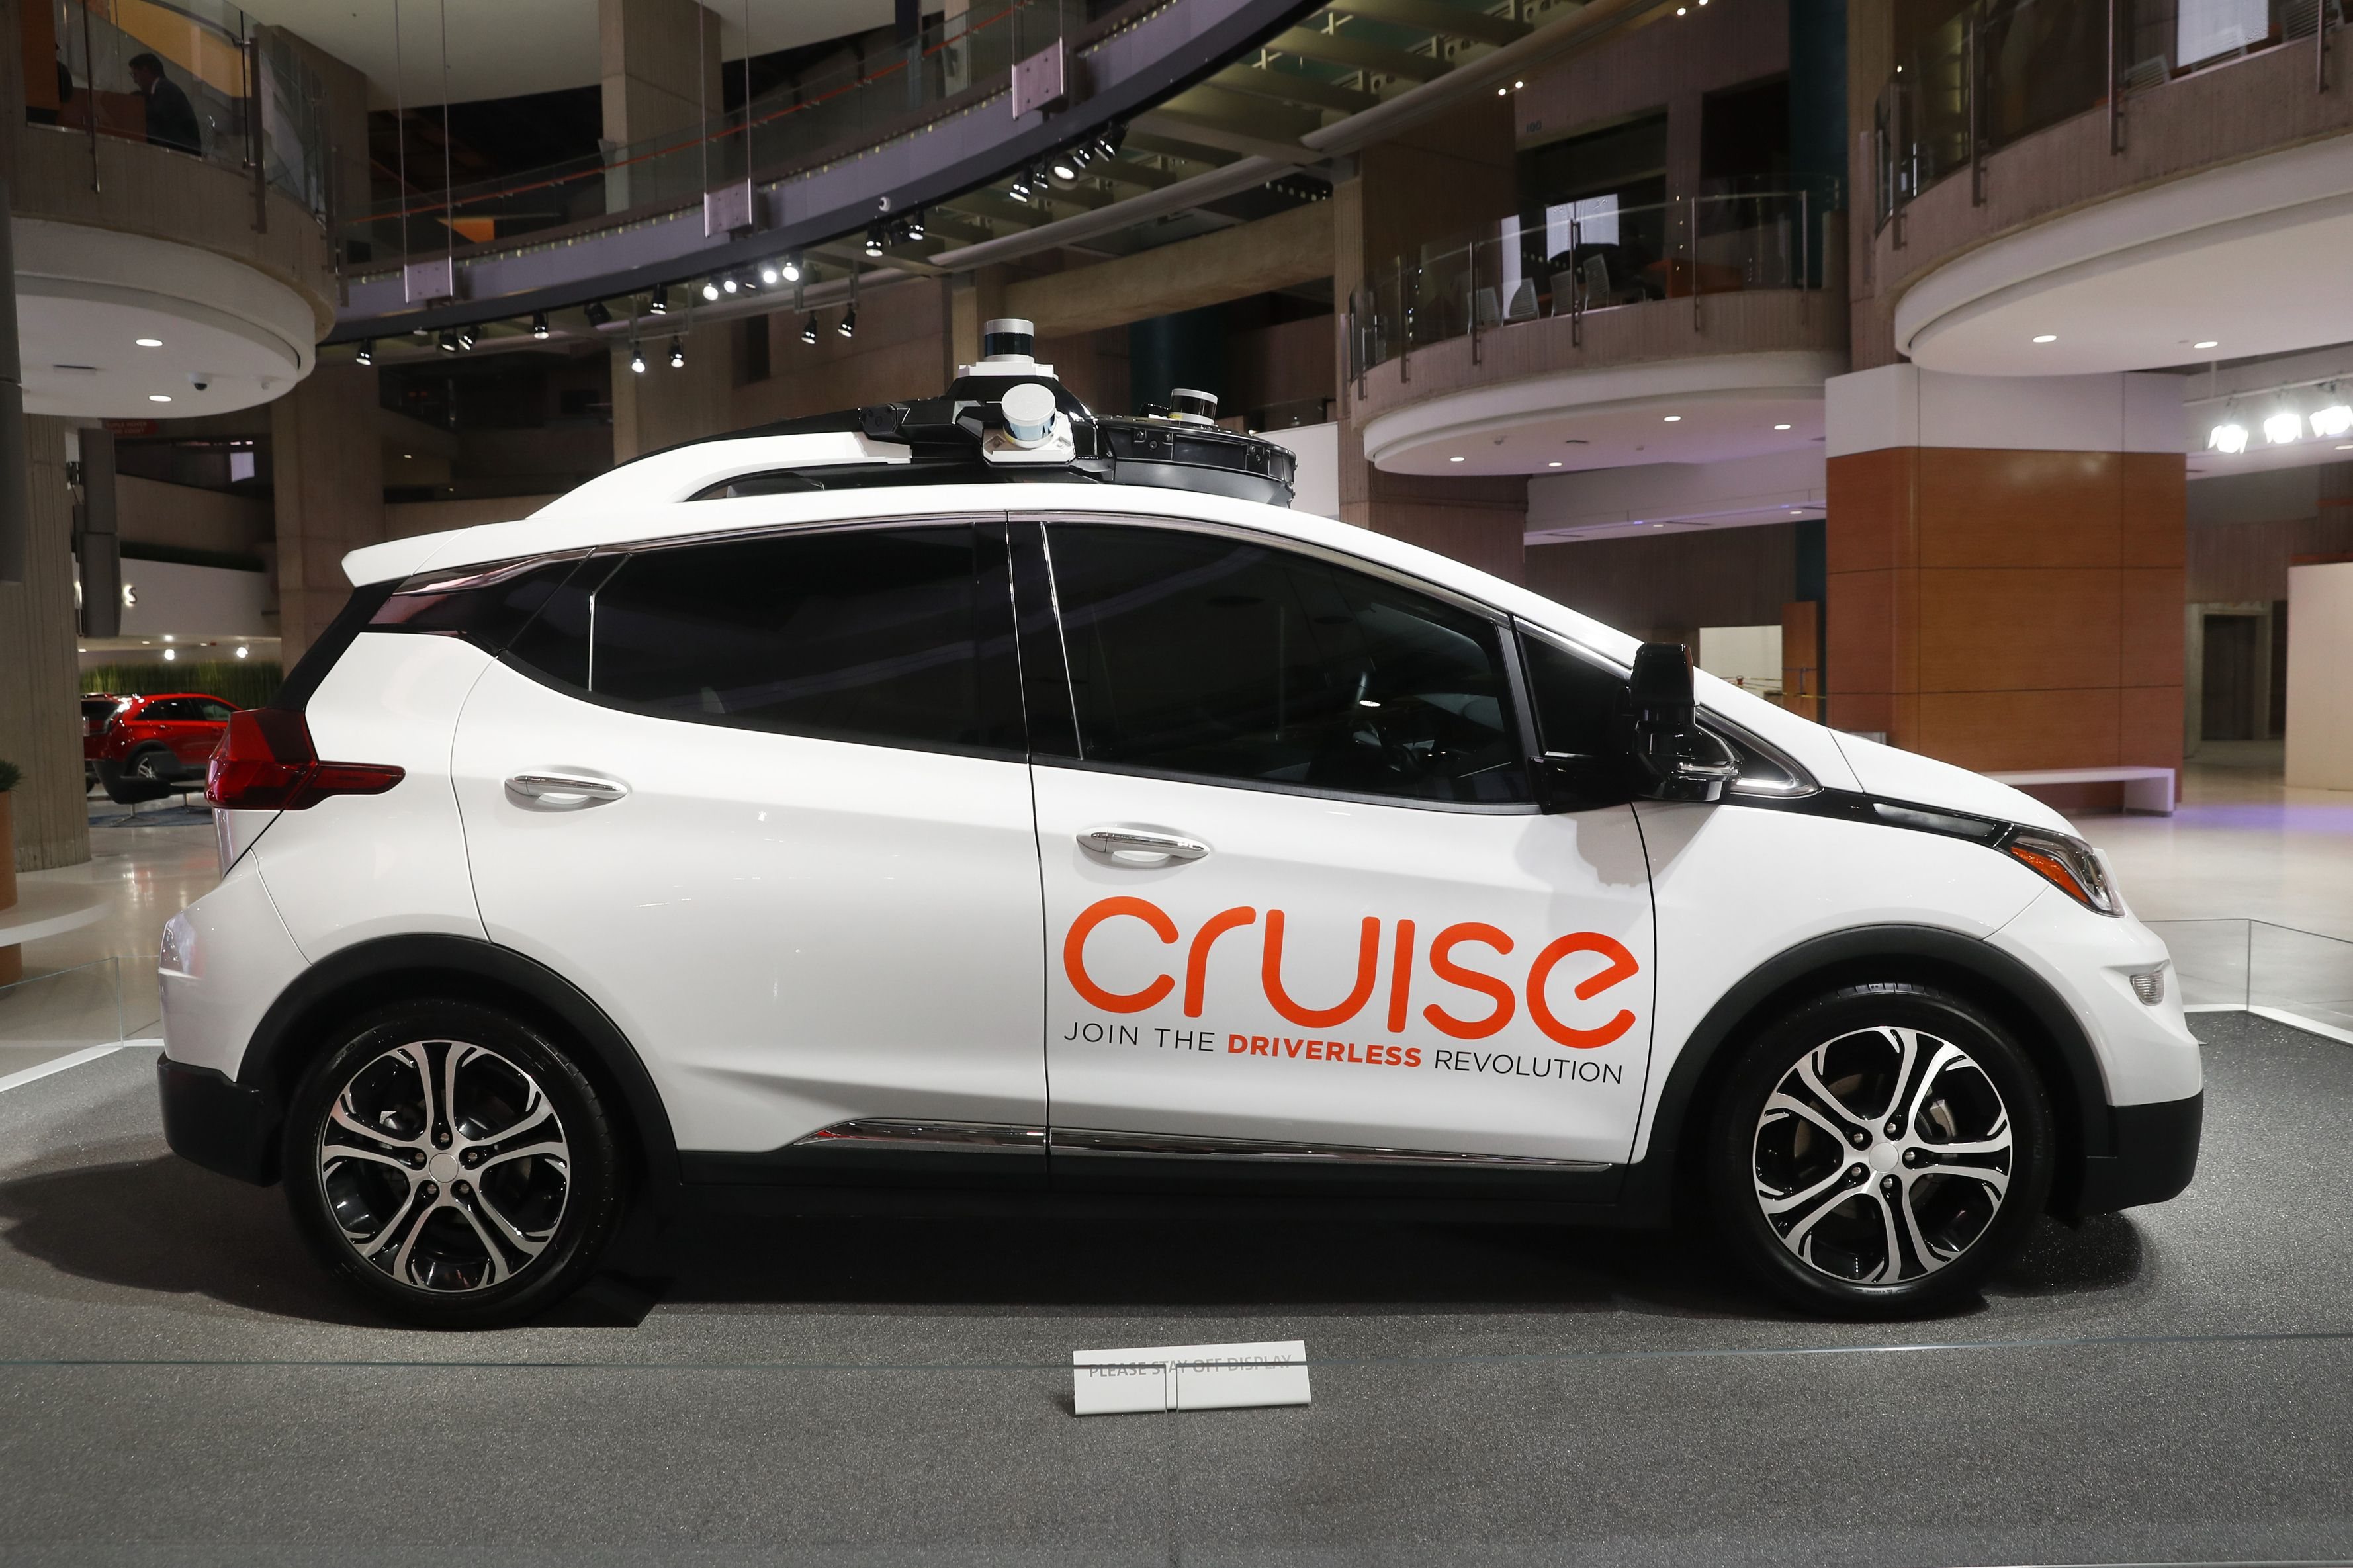 Myth No. 1 Autonomous cars will mean fewer private ones